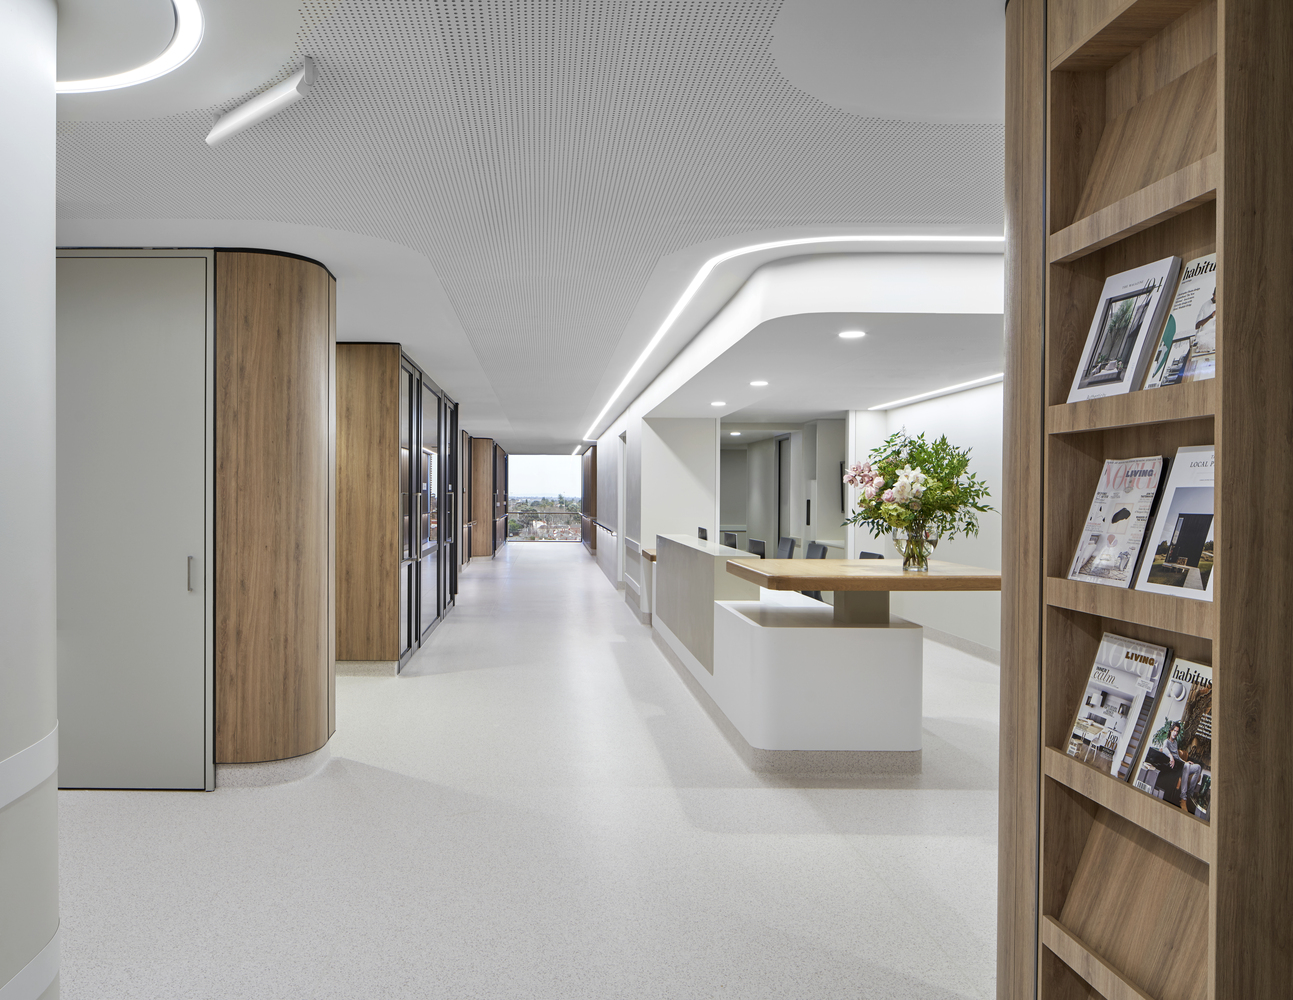 Improving the Healthcare Experience with Lighting